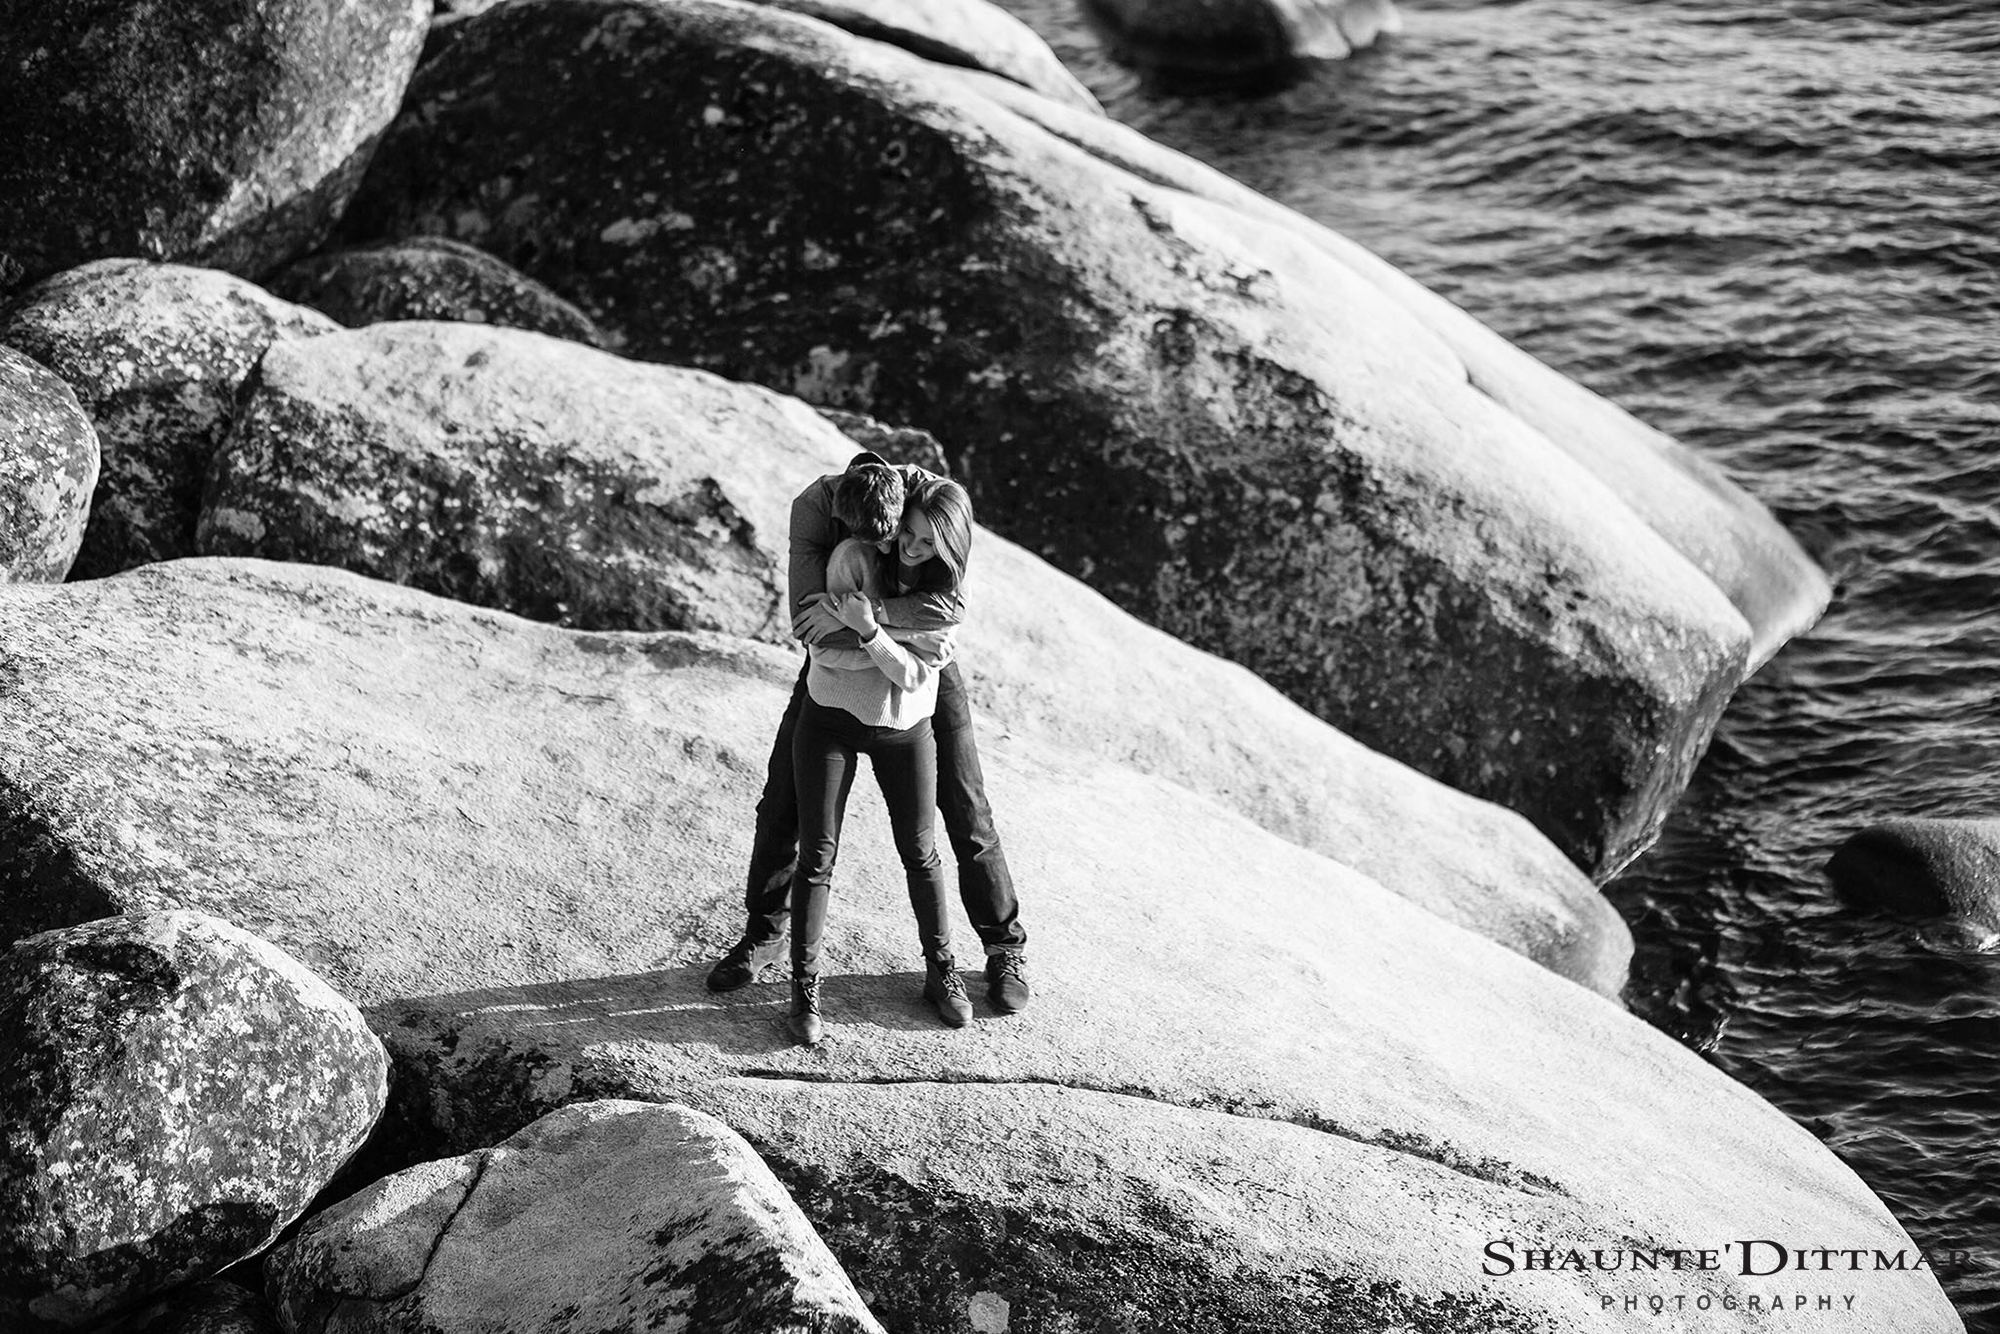 Kim_Daniel_340_Bonzai_Rock_Engagement_Lake_Tahoe_Shaunte_Dittmar_Photography.jpg